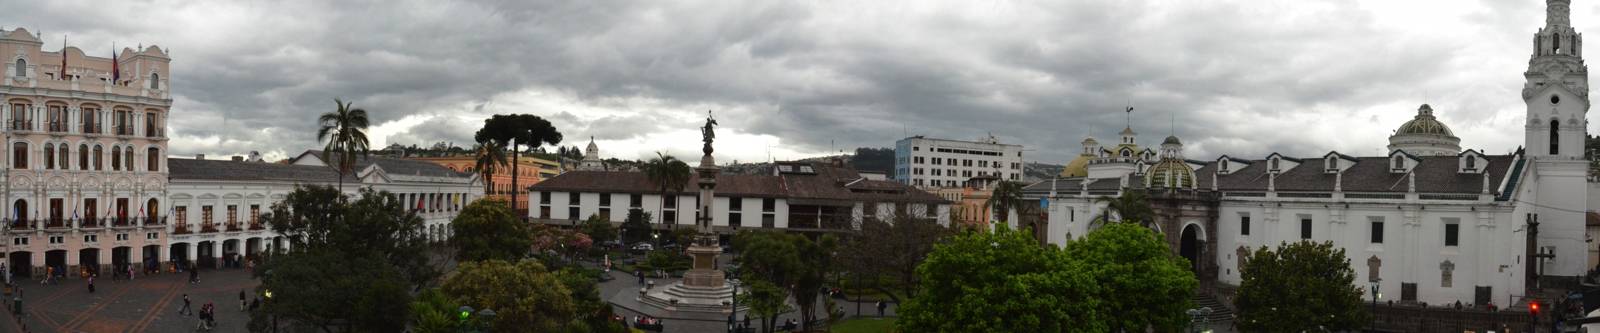 Plaza de la Independencia (click on photo to see larger image)